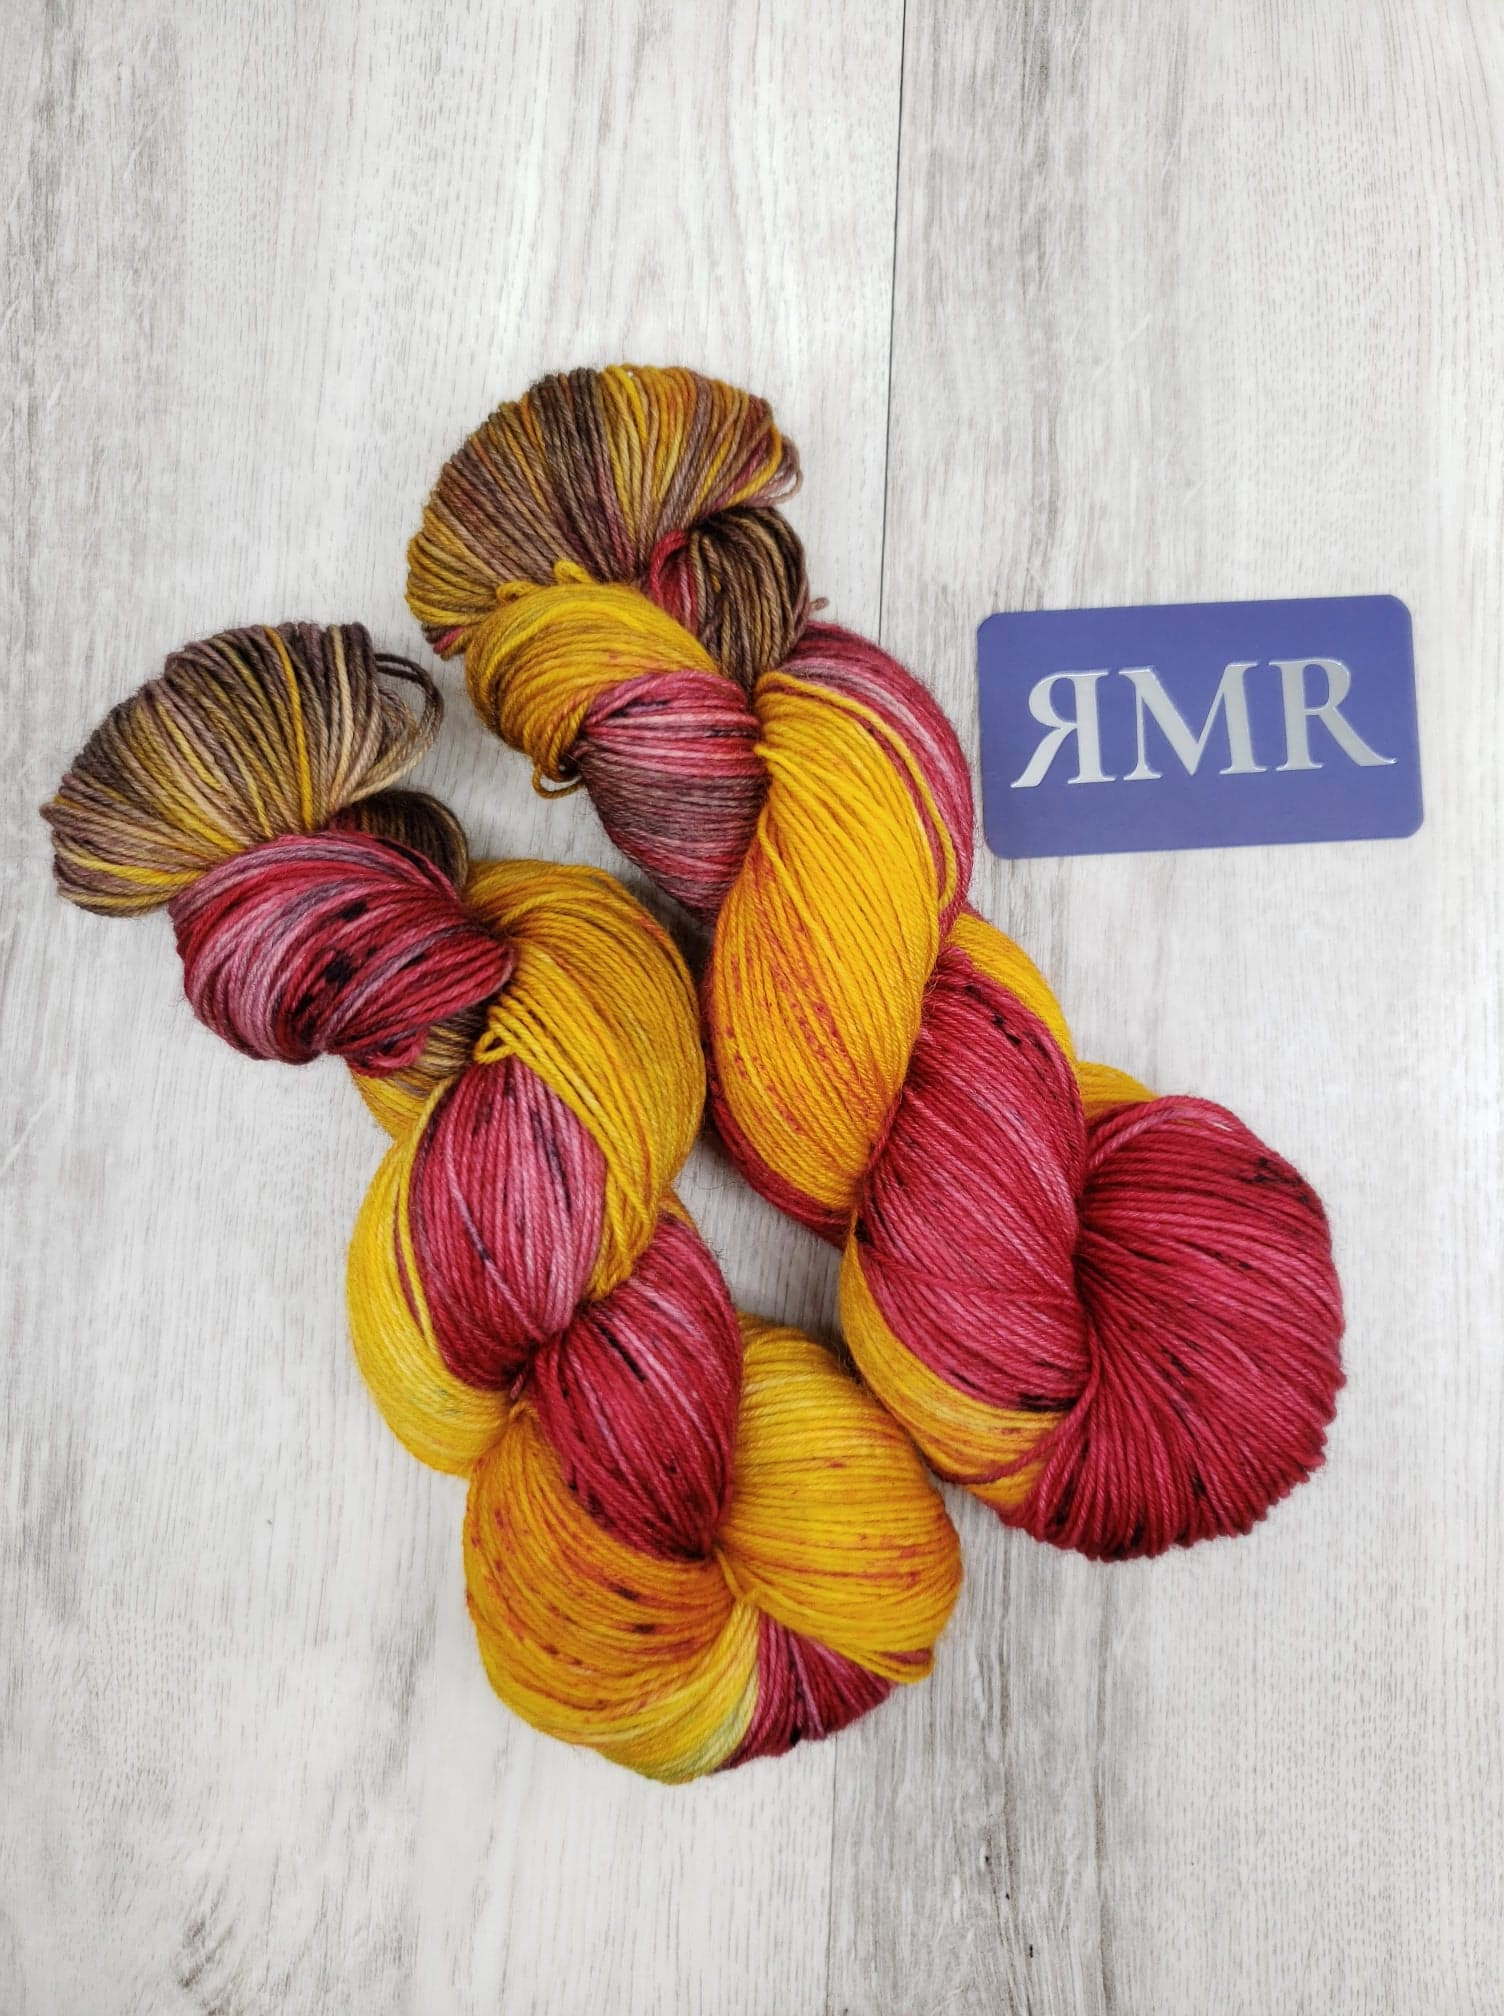 RMR Yarn Co. - Espirales Colorways - Pre-Orders (Shipped Within 2 Weeks)